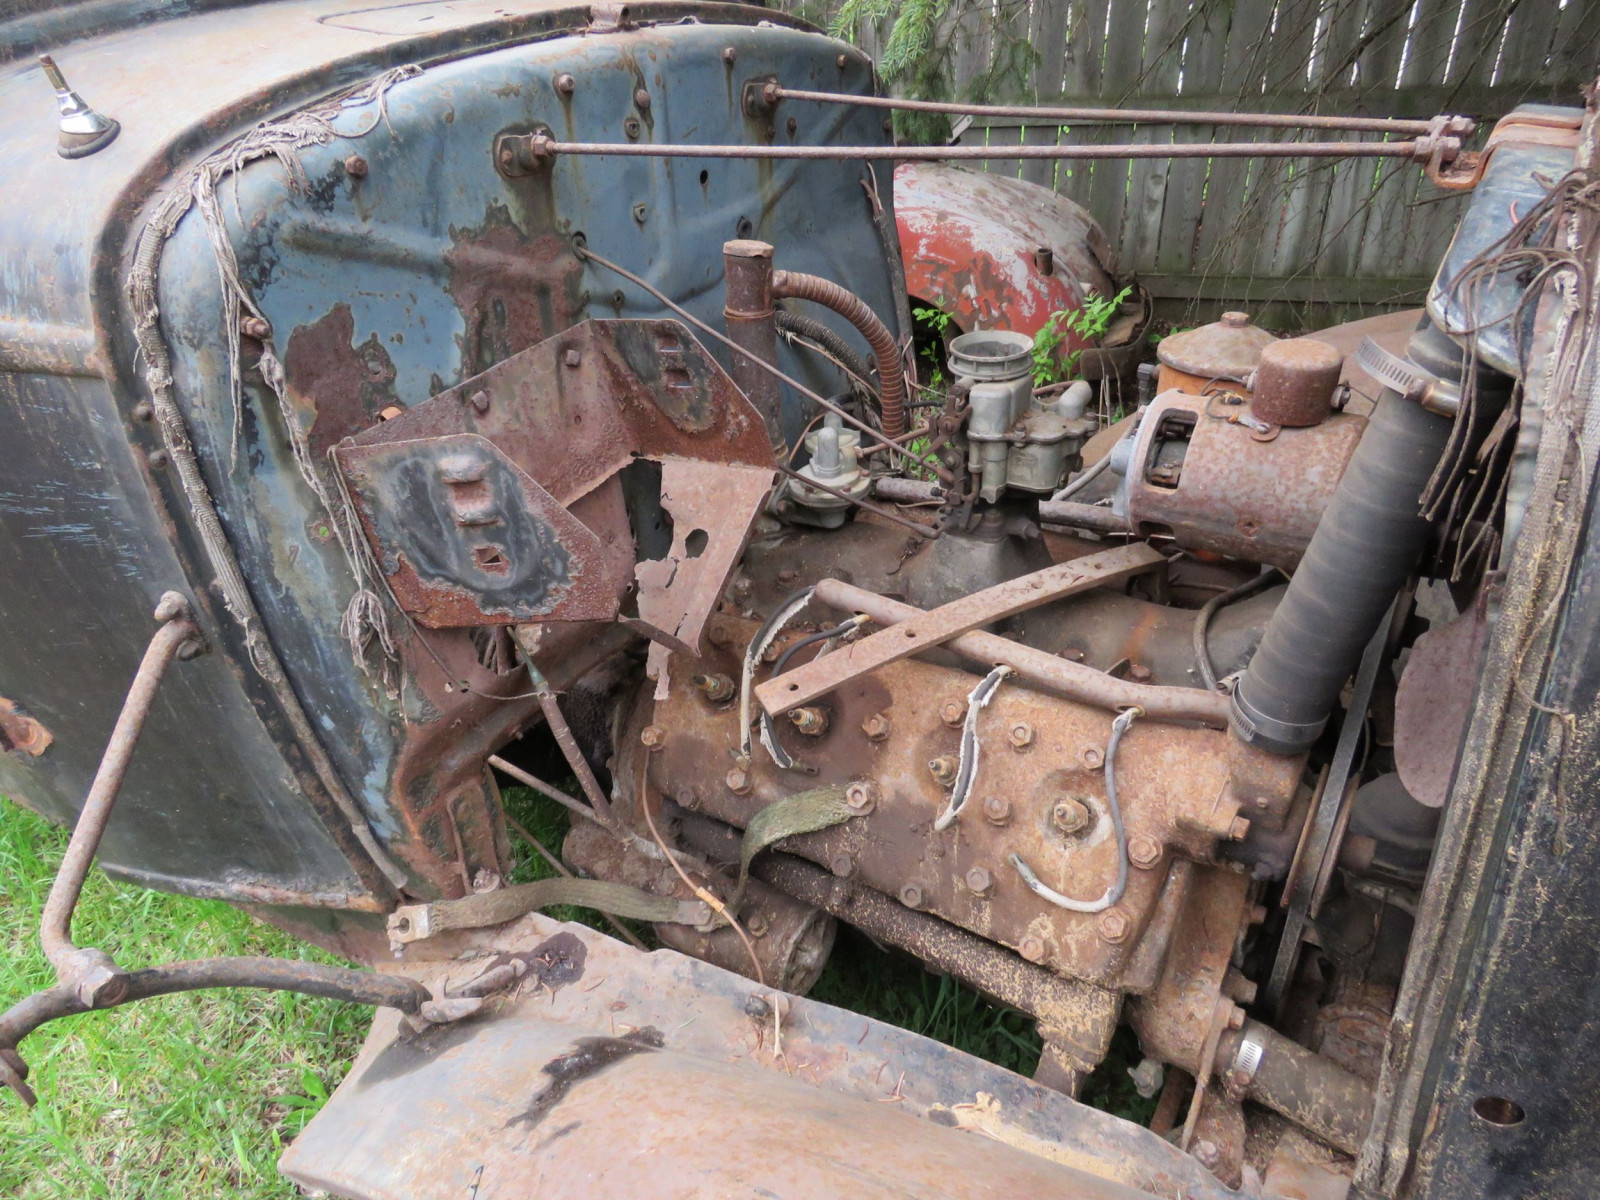 1932 Ford Truck for Project or Rod - Image 2